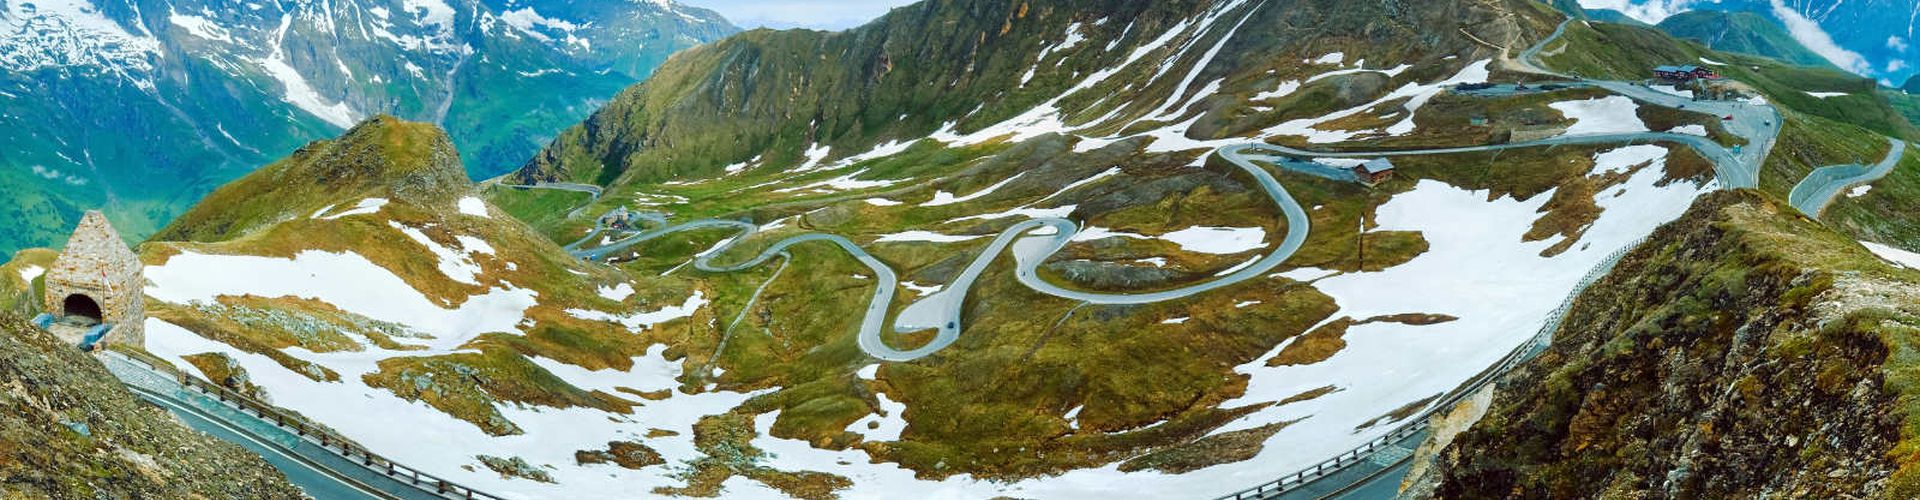 Cycling the 10 highest paved roads in Europe